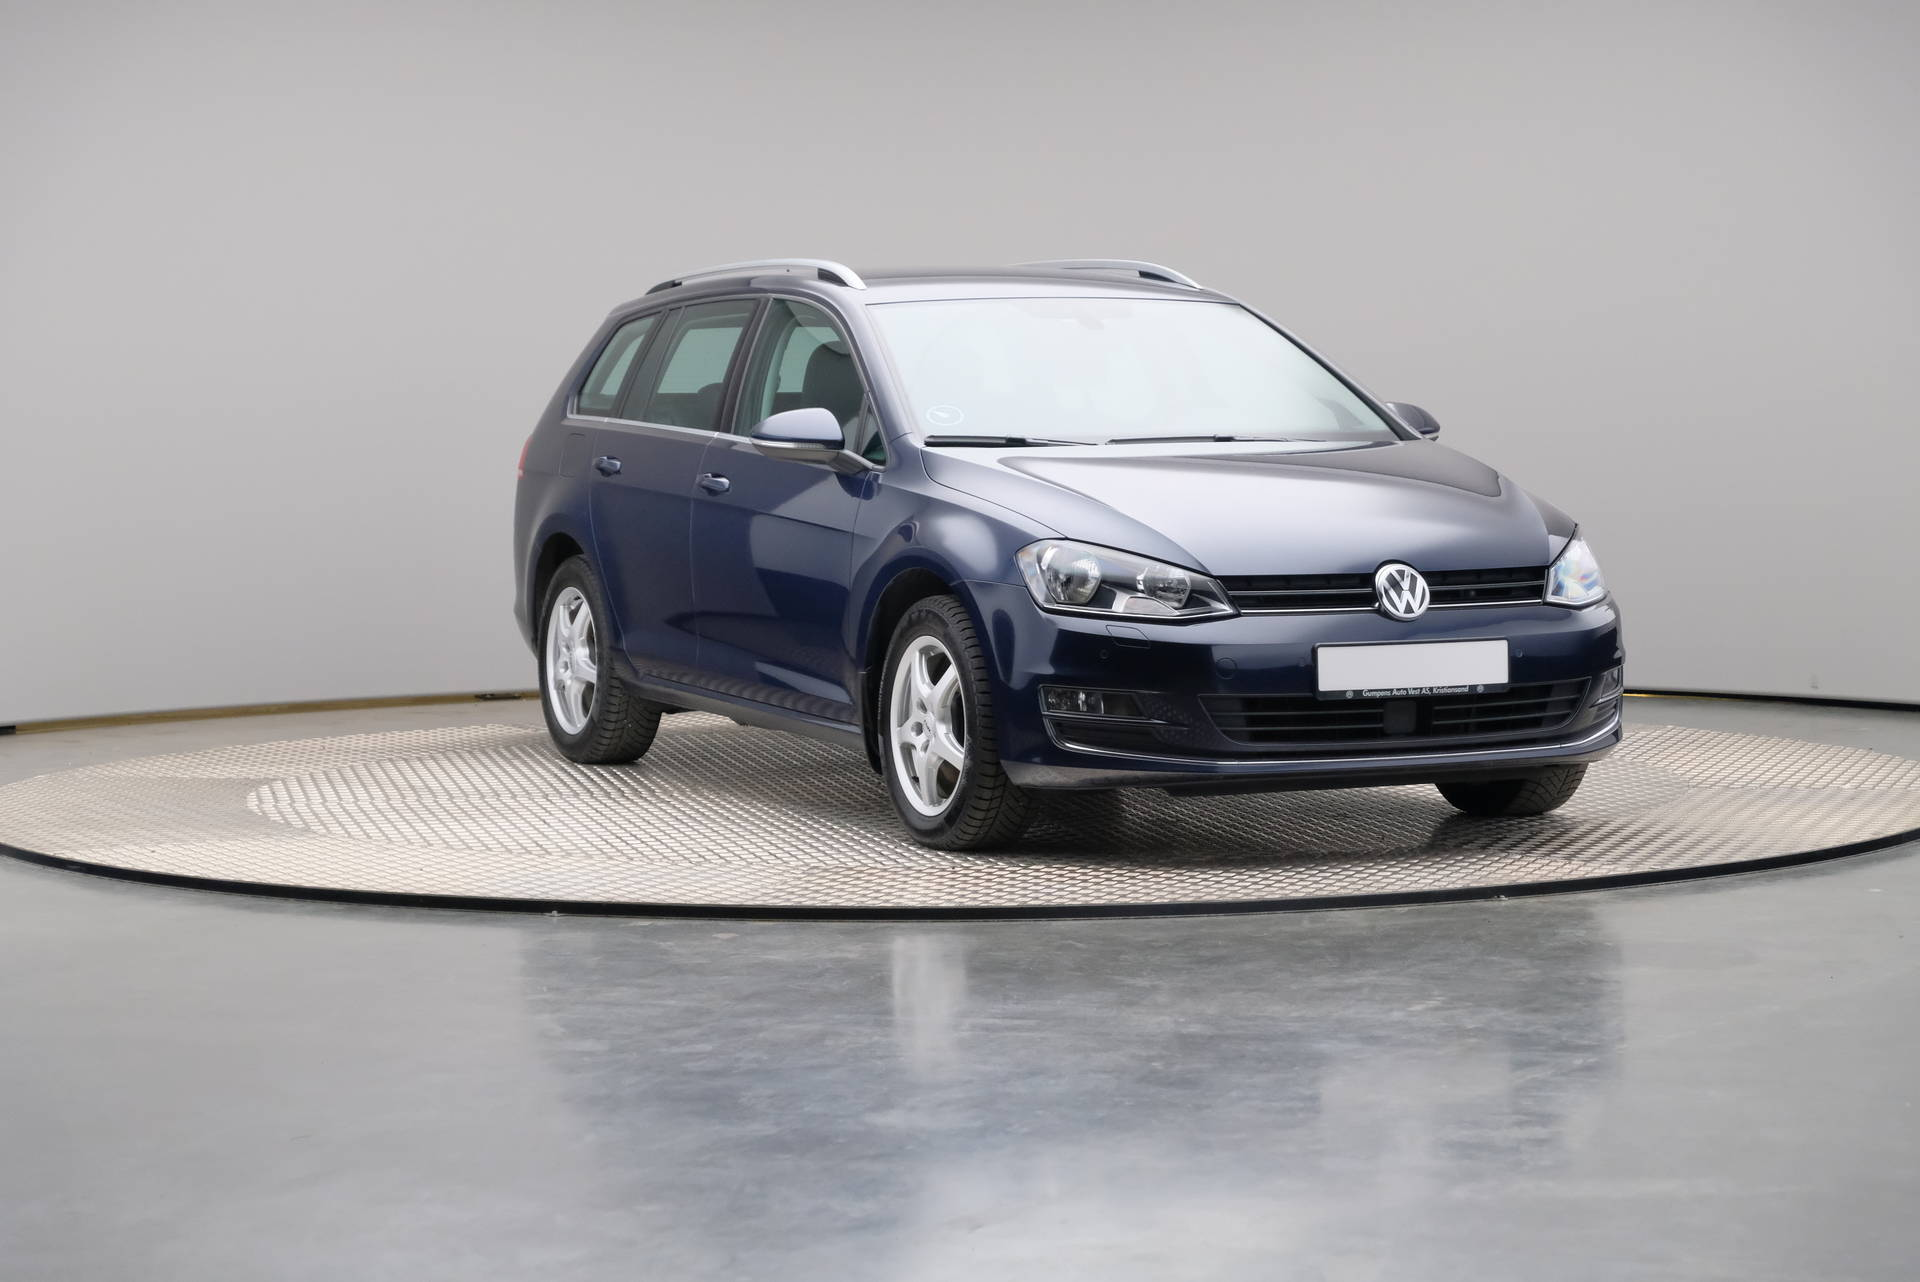 Volkswagen Golf Golf Variant 1.4 TSI BlueMotion Technology DSG, Highline, 360-image29